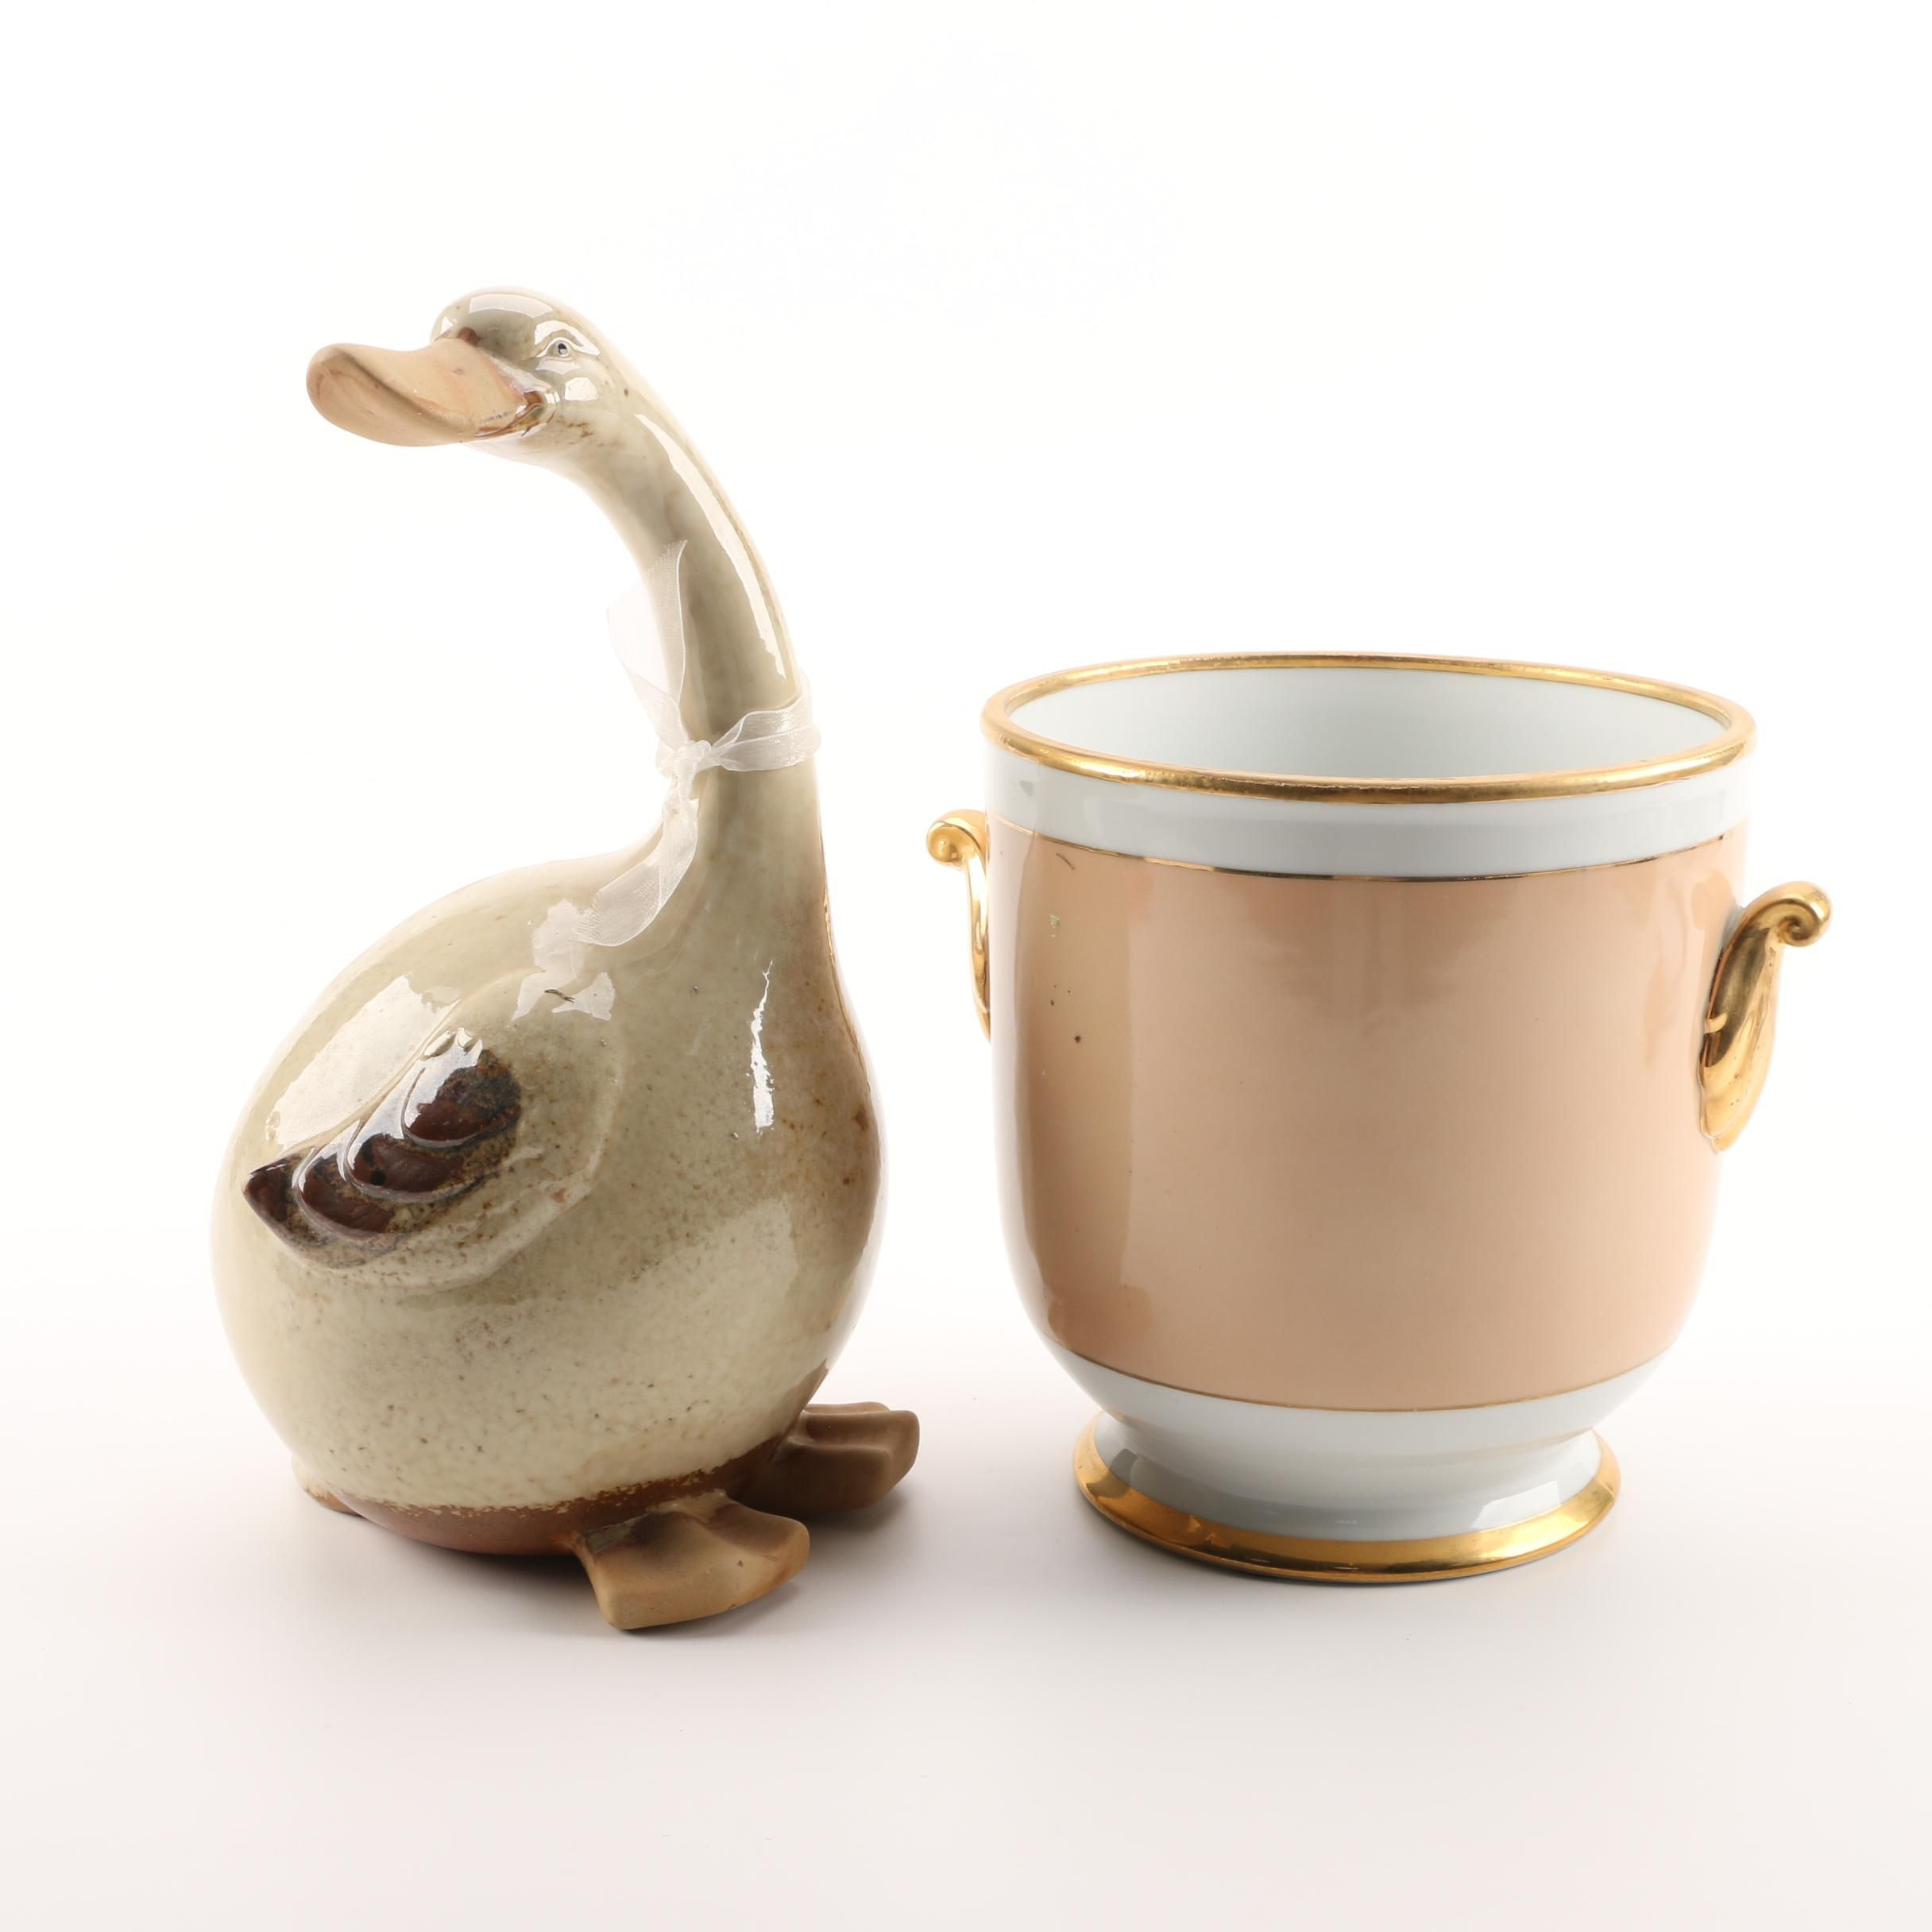 Andrea by Sadek Porcelain Cache Pot with Goose Figurine